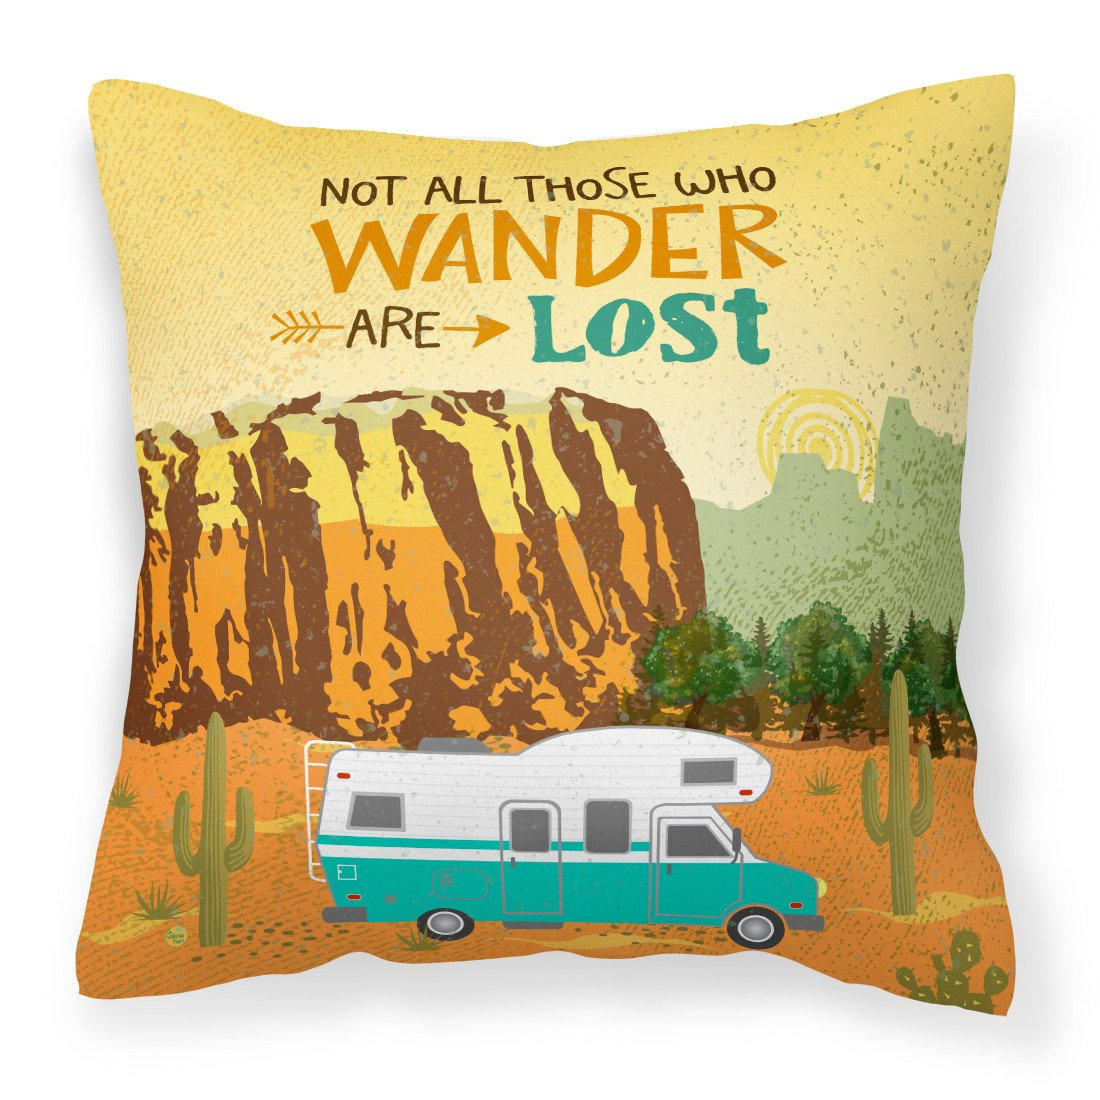 Buy this RV Camper Camping Wander Fabric Decorative Pillow VHA3027PW1818